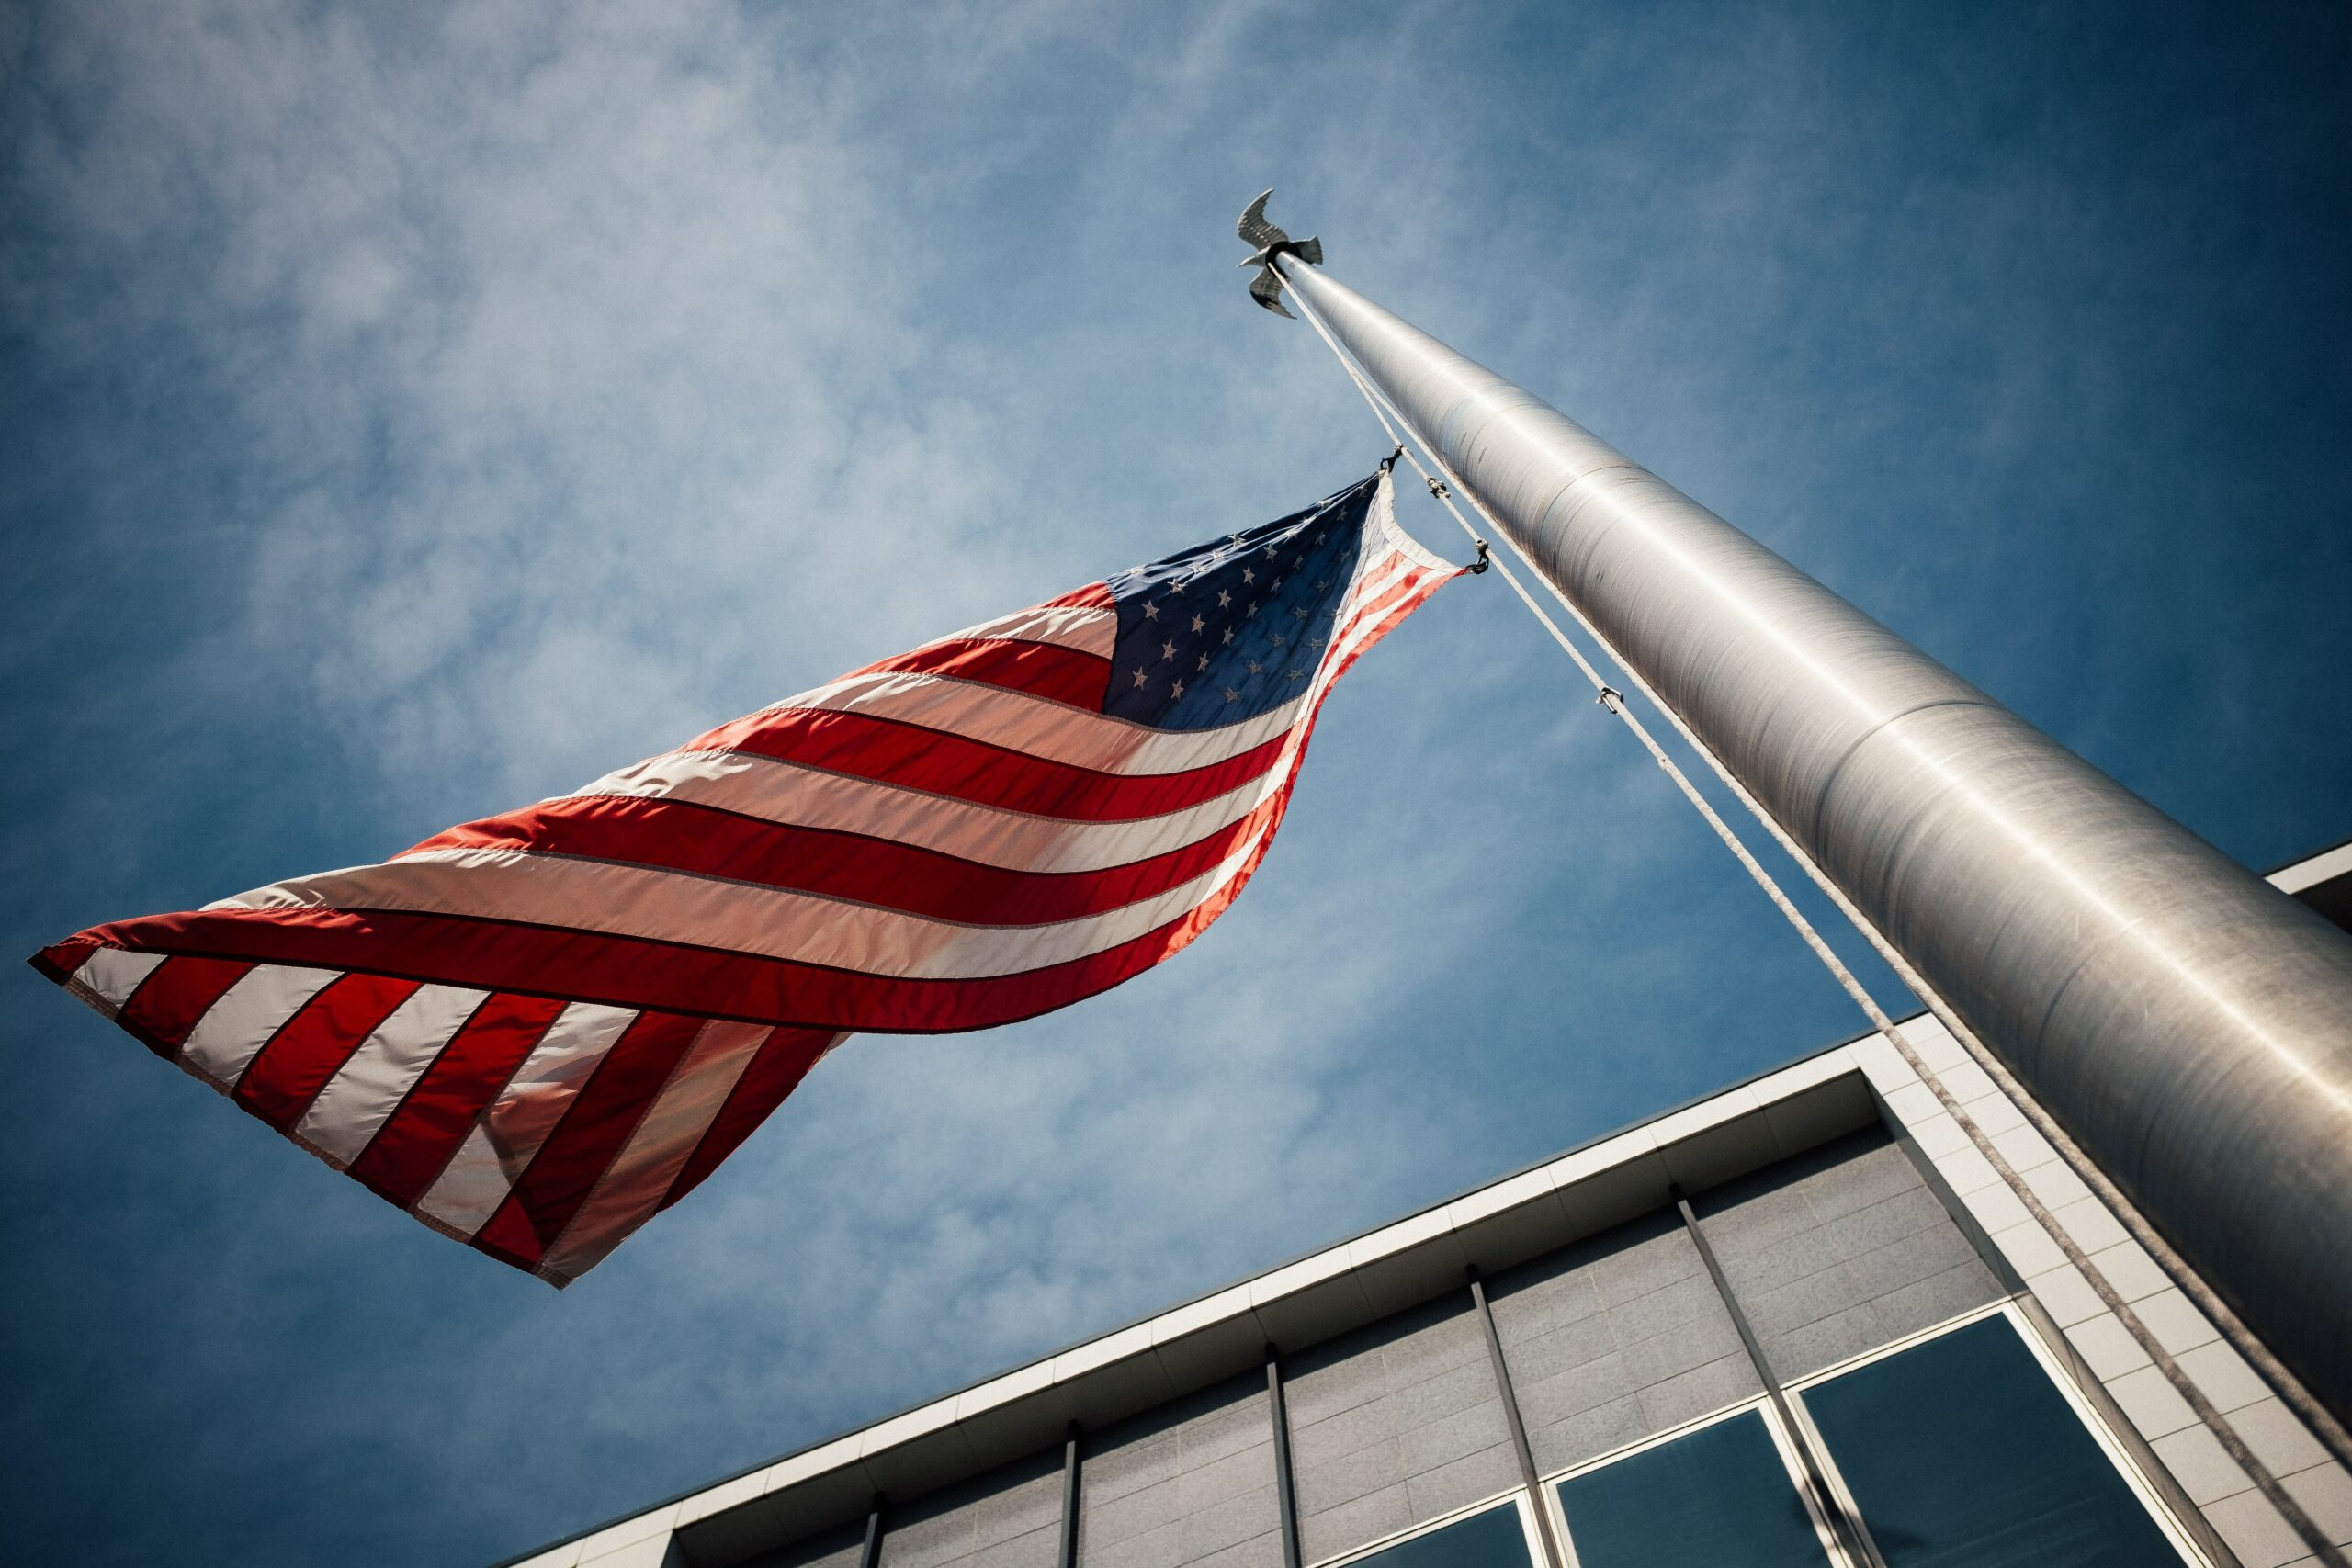 a bottom up view of an american flag attached to a tall silver pole flying in the.wind in front of a grey office building with windows